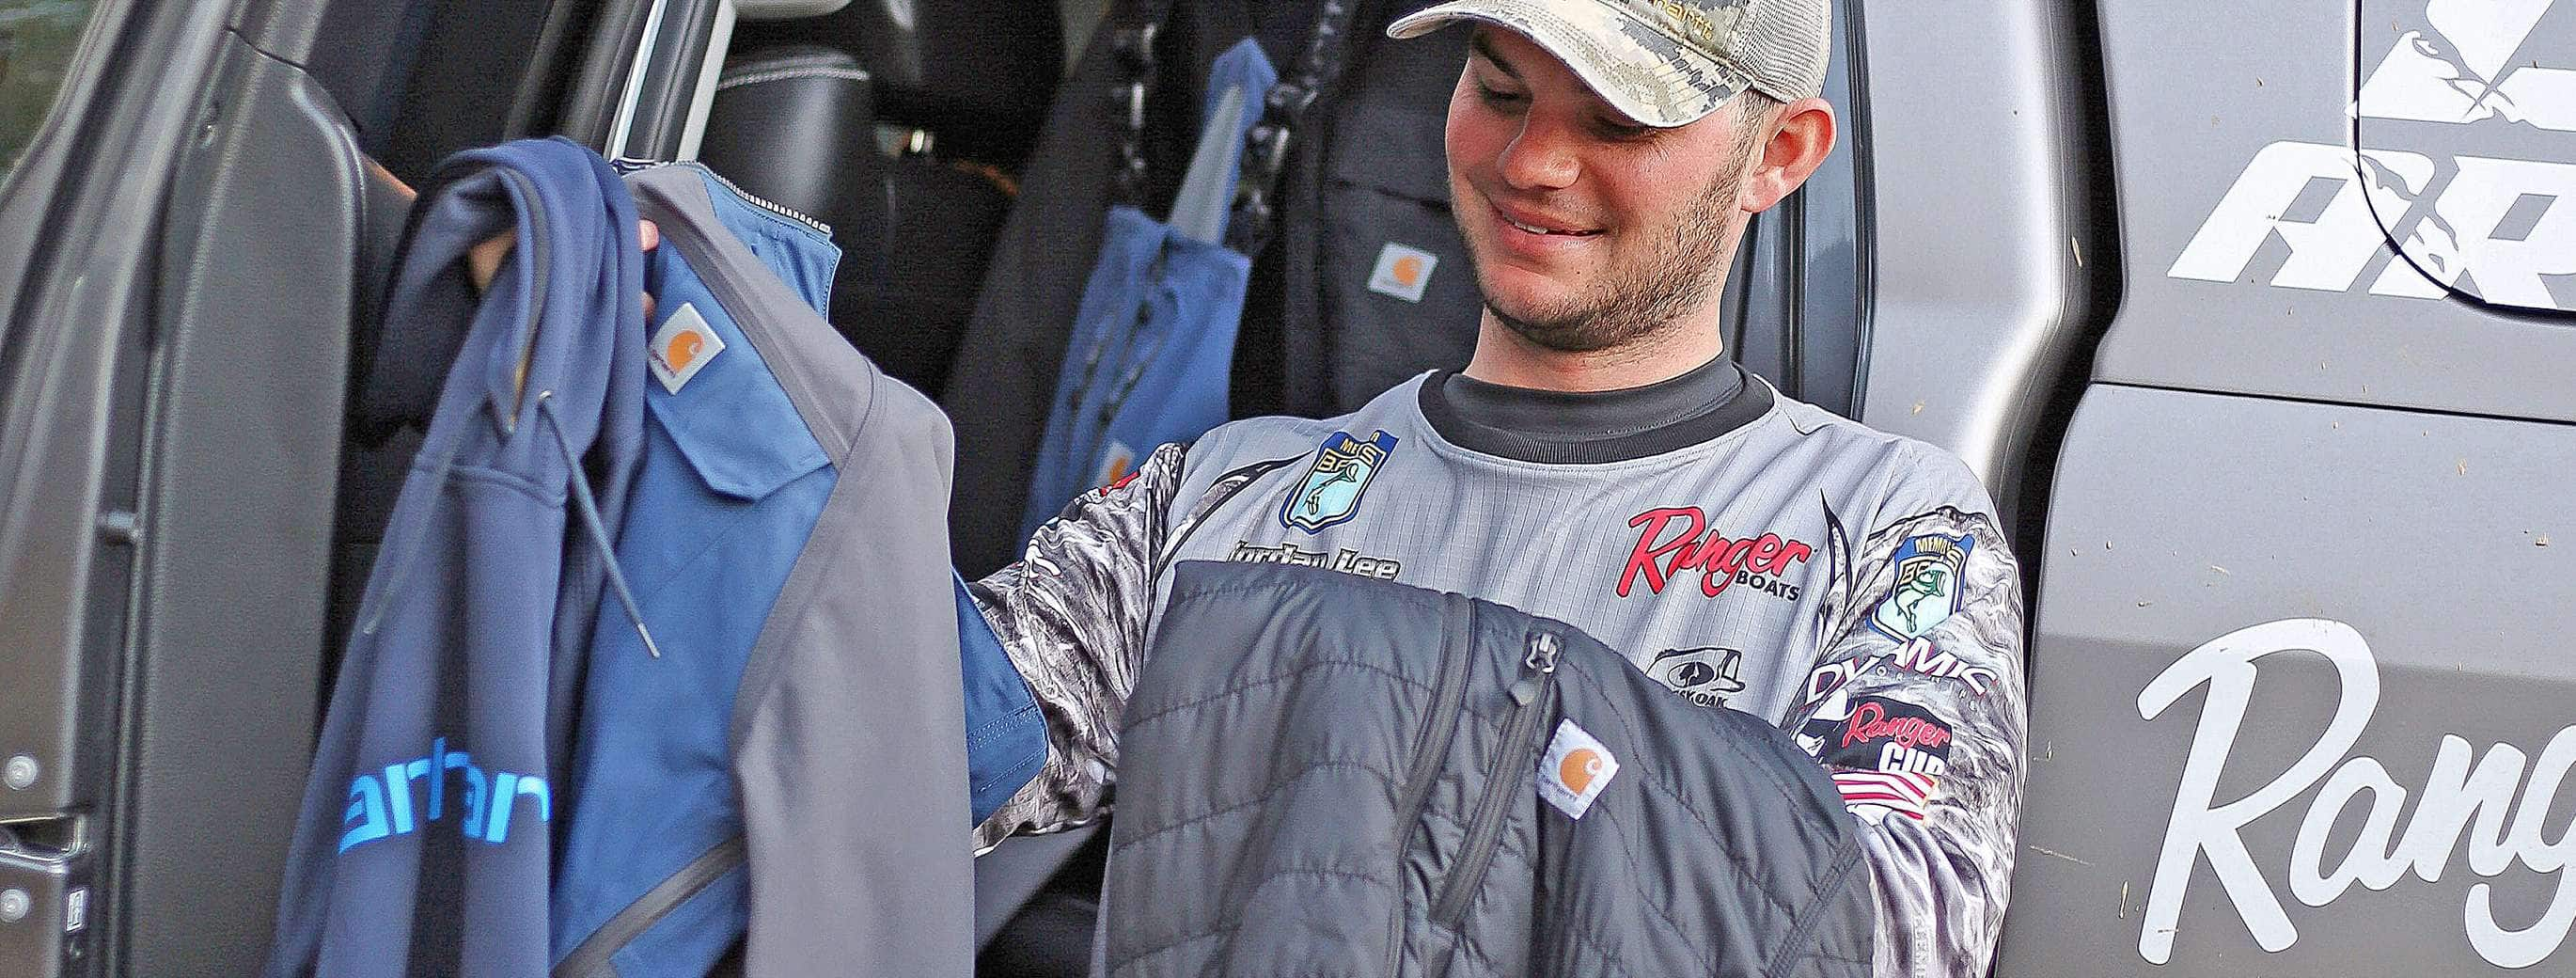 In just a few days, reigning Bassmaster Classic Champion Jordan Lee will pack his truck...  Read More